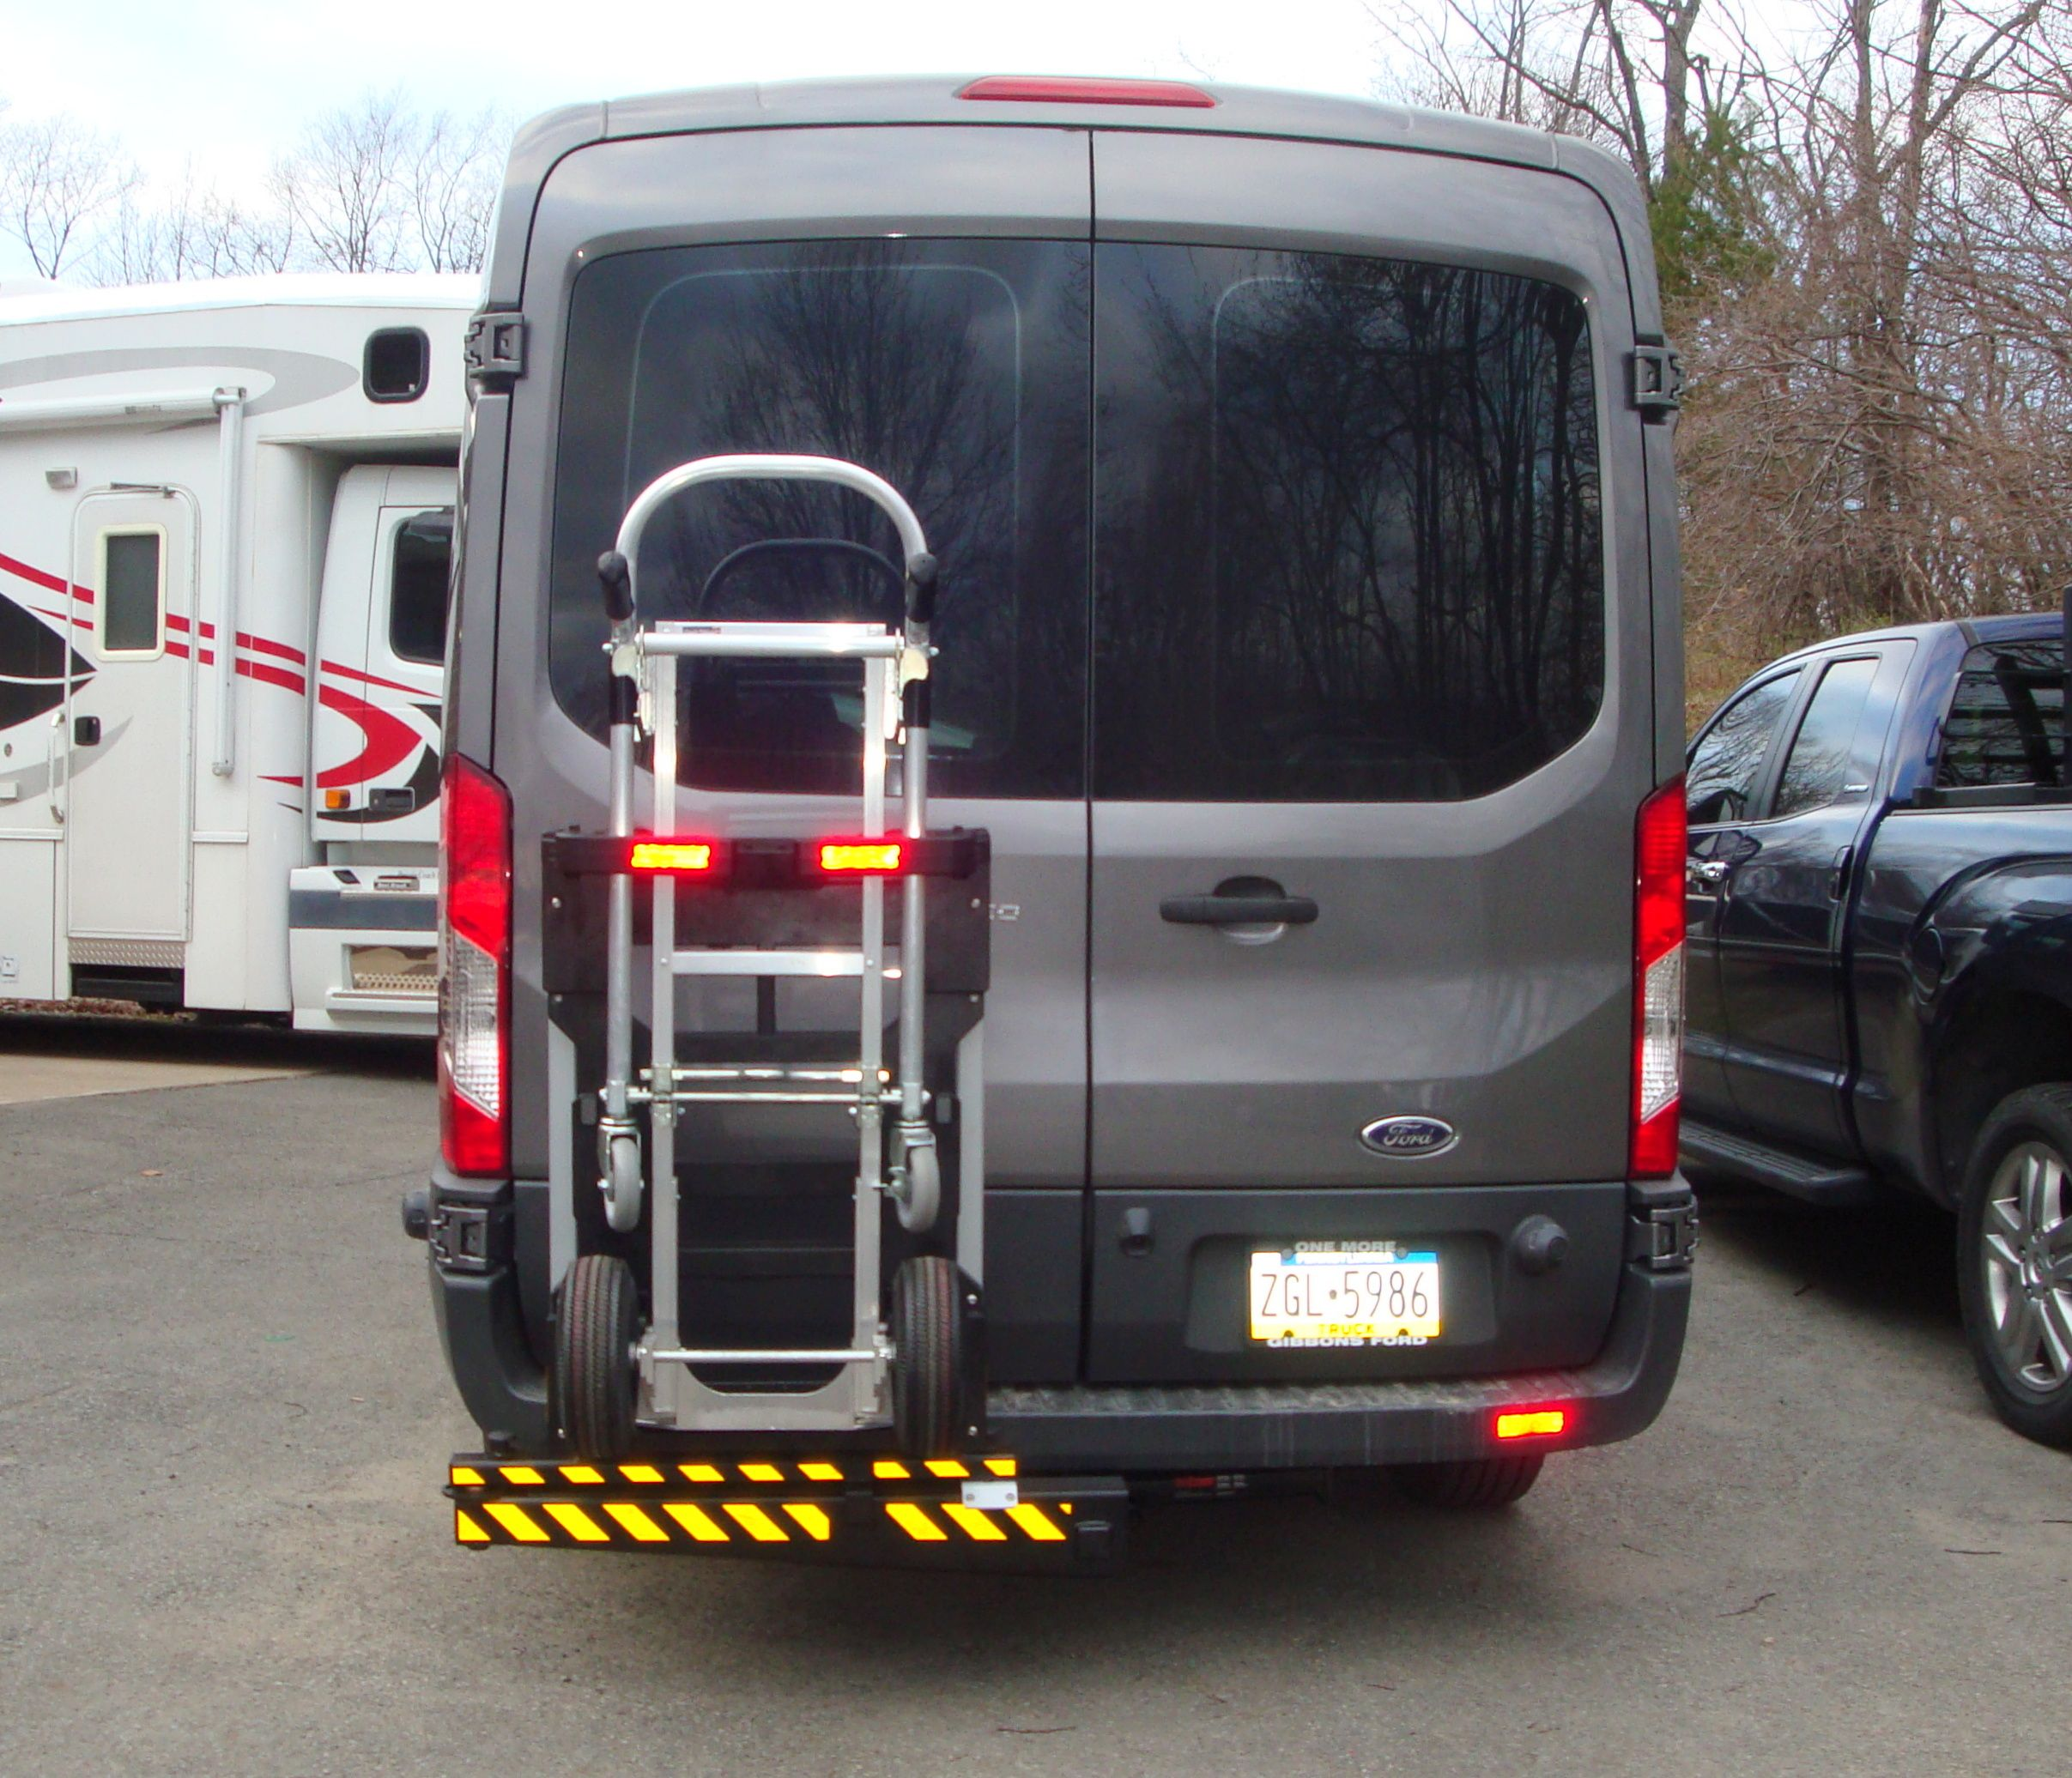 t gvwr varney inc transit rf sliding med dr in vehicle rh for van sale new ford vehicledetails me newport